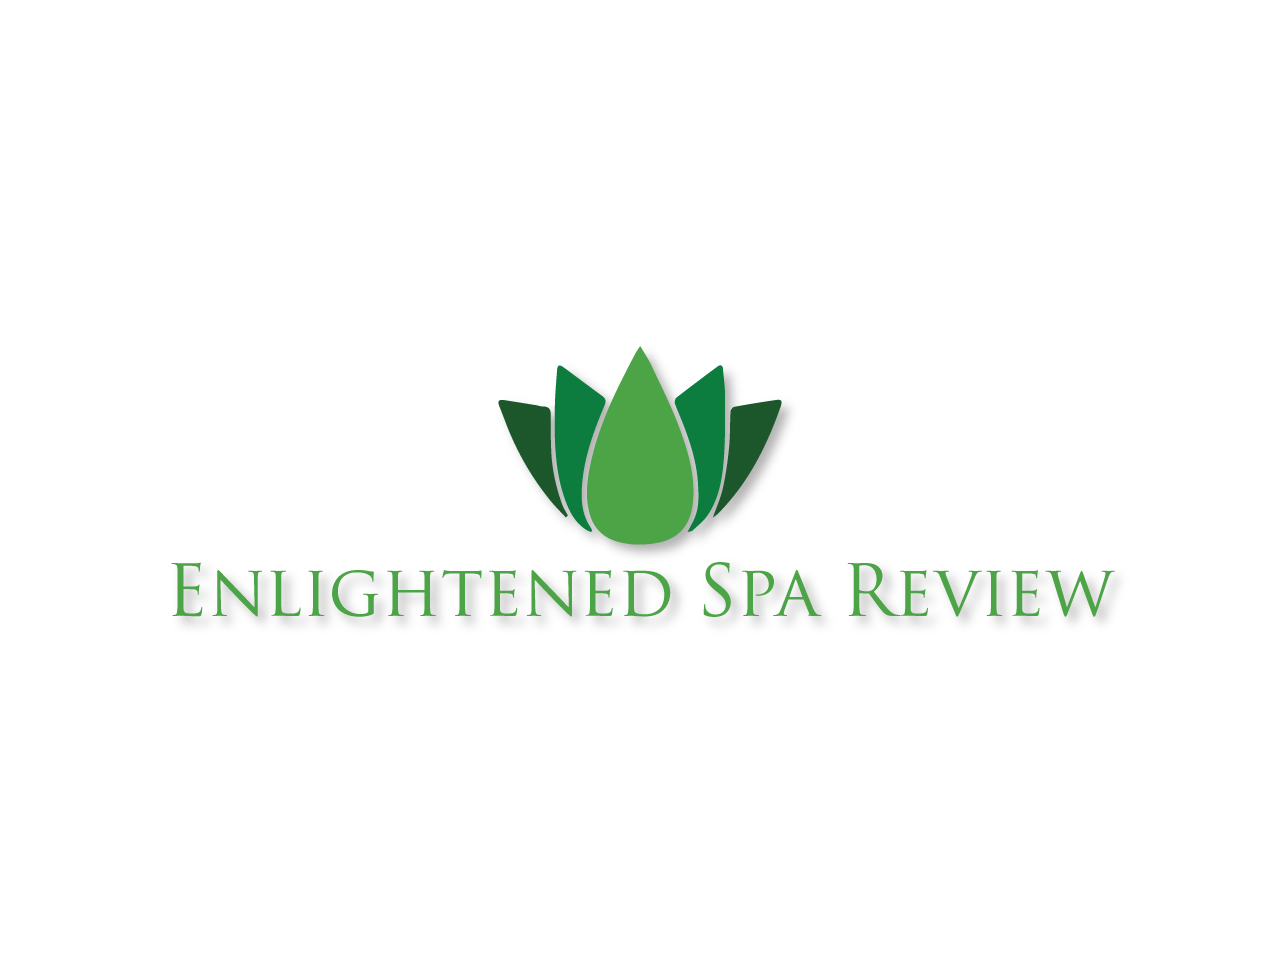 Enlightened Spa Review